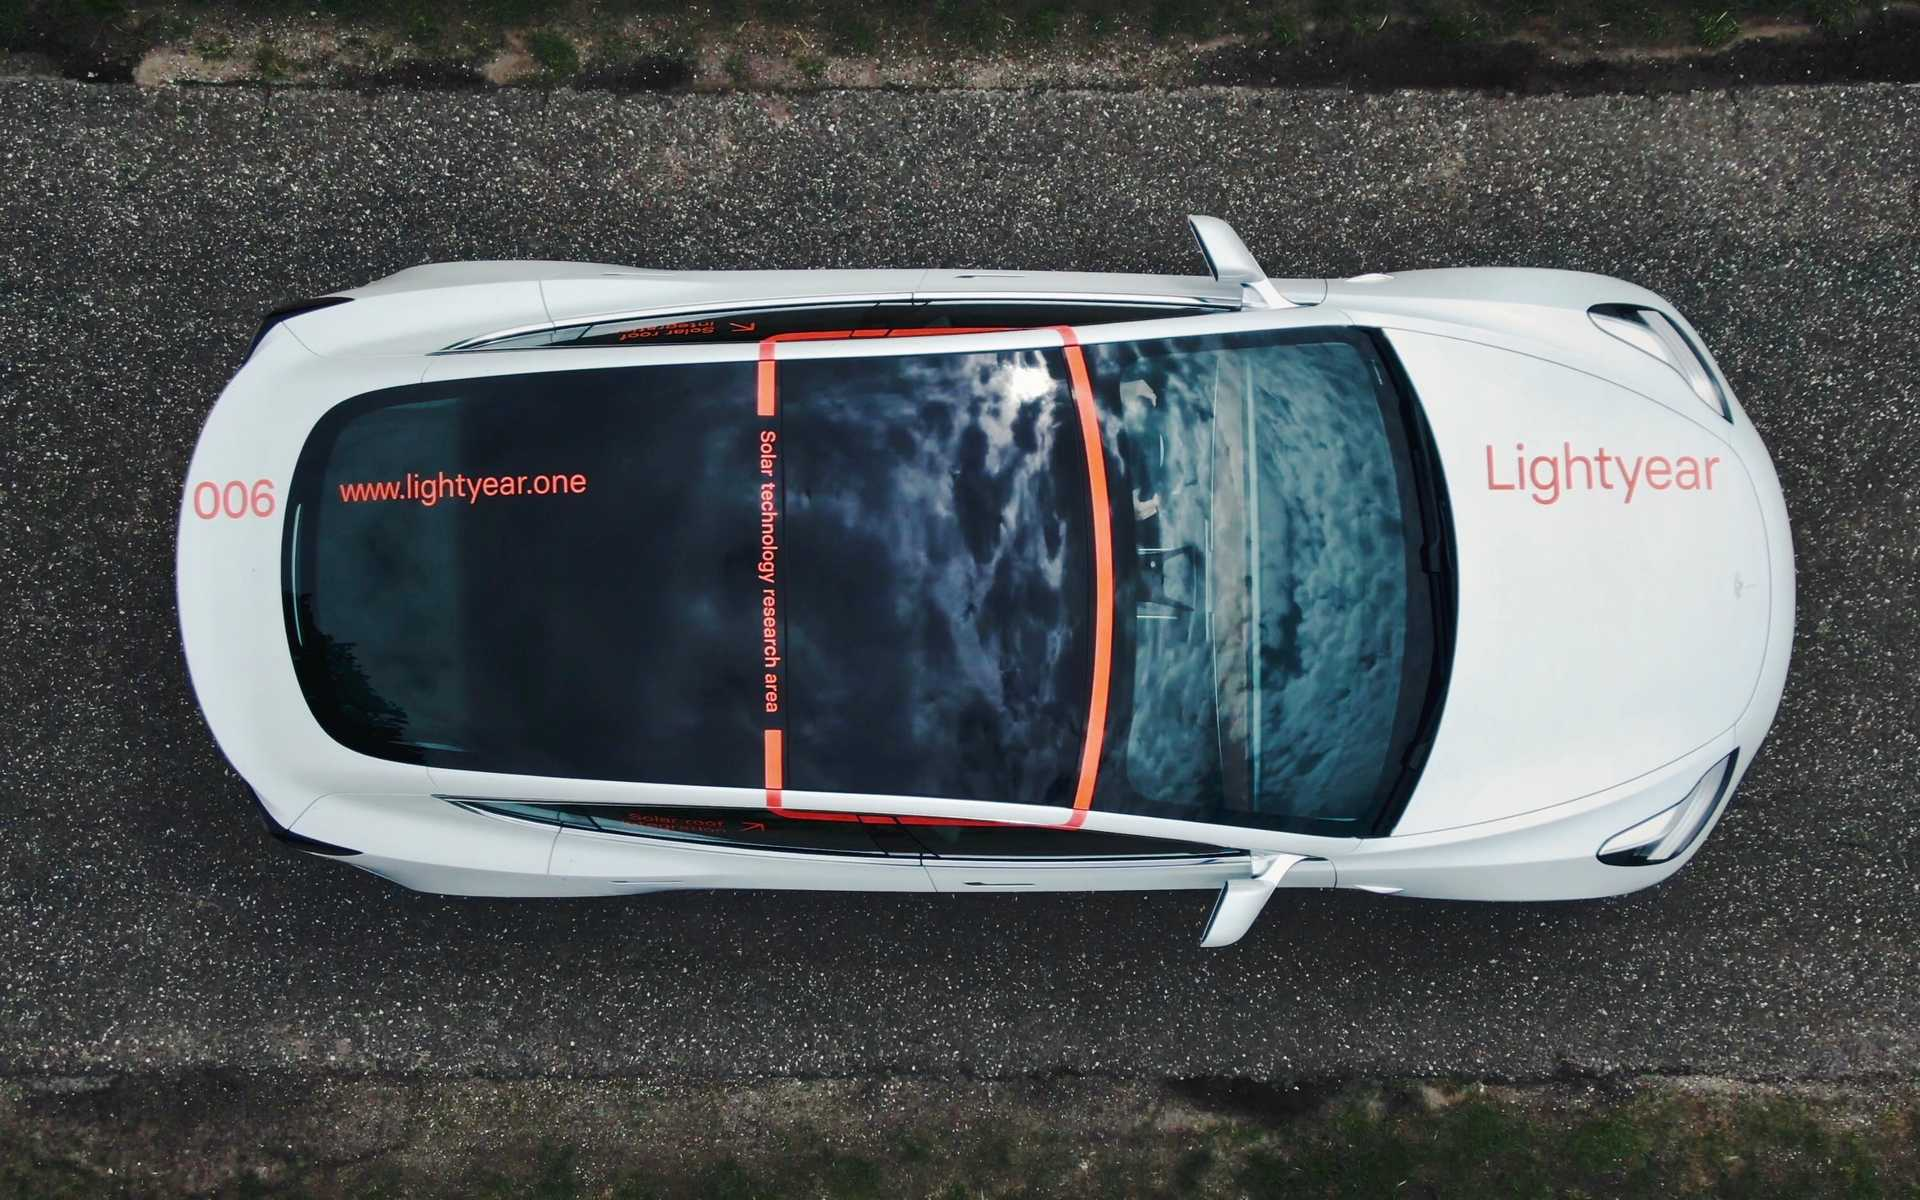 Tesla with solar powered roof, provided by Lightyear